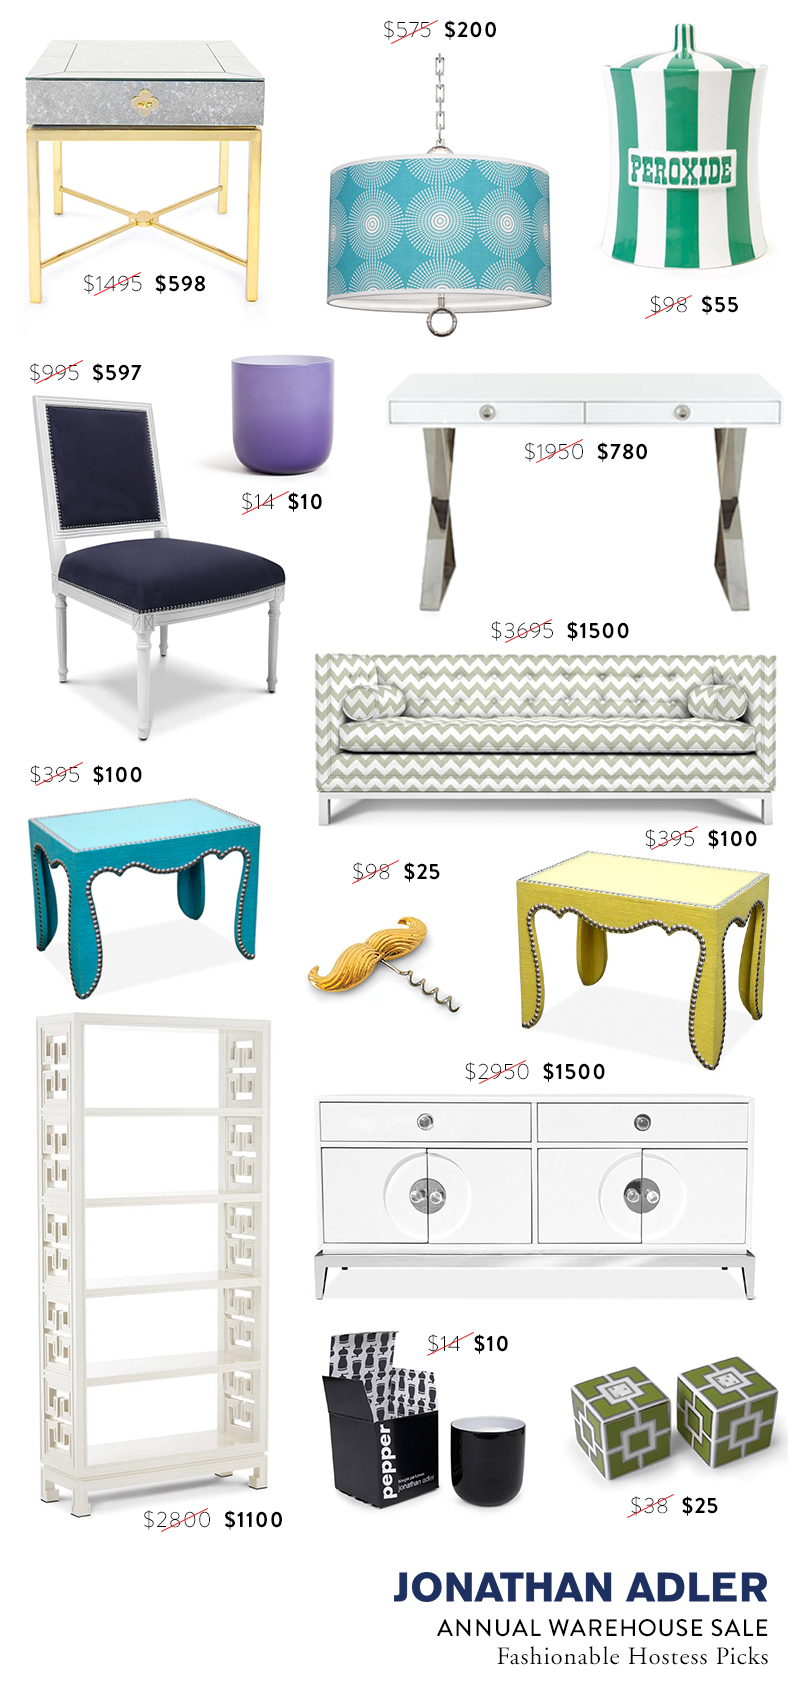 jonathanadler annual warehouse sale picks by FashionableHostess